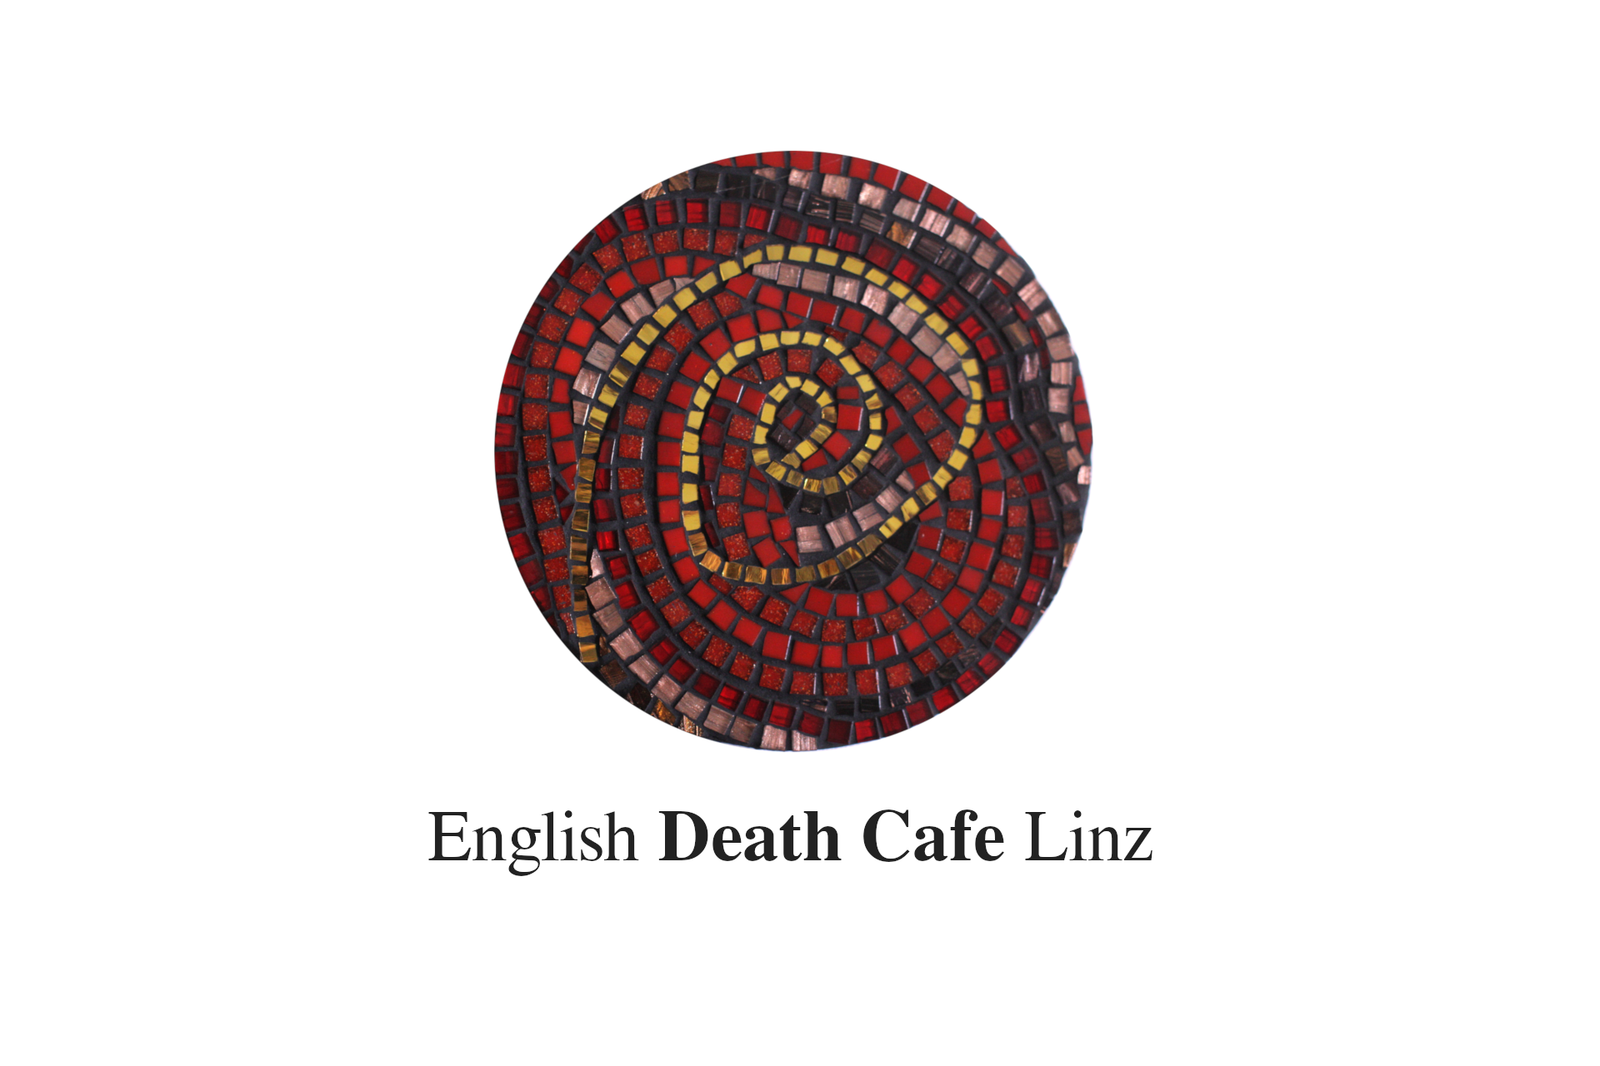 English Death Cafe Linz